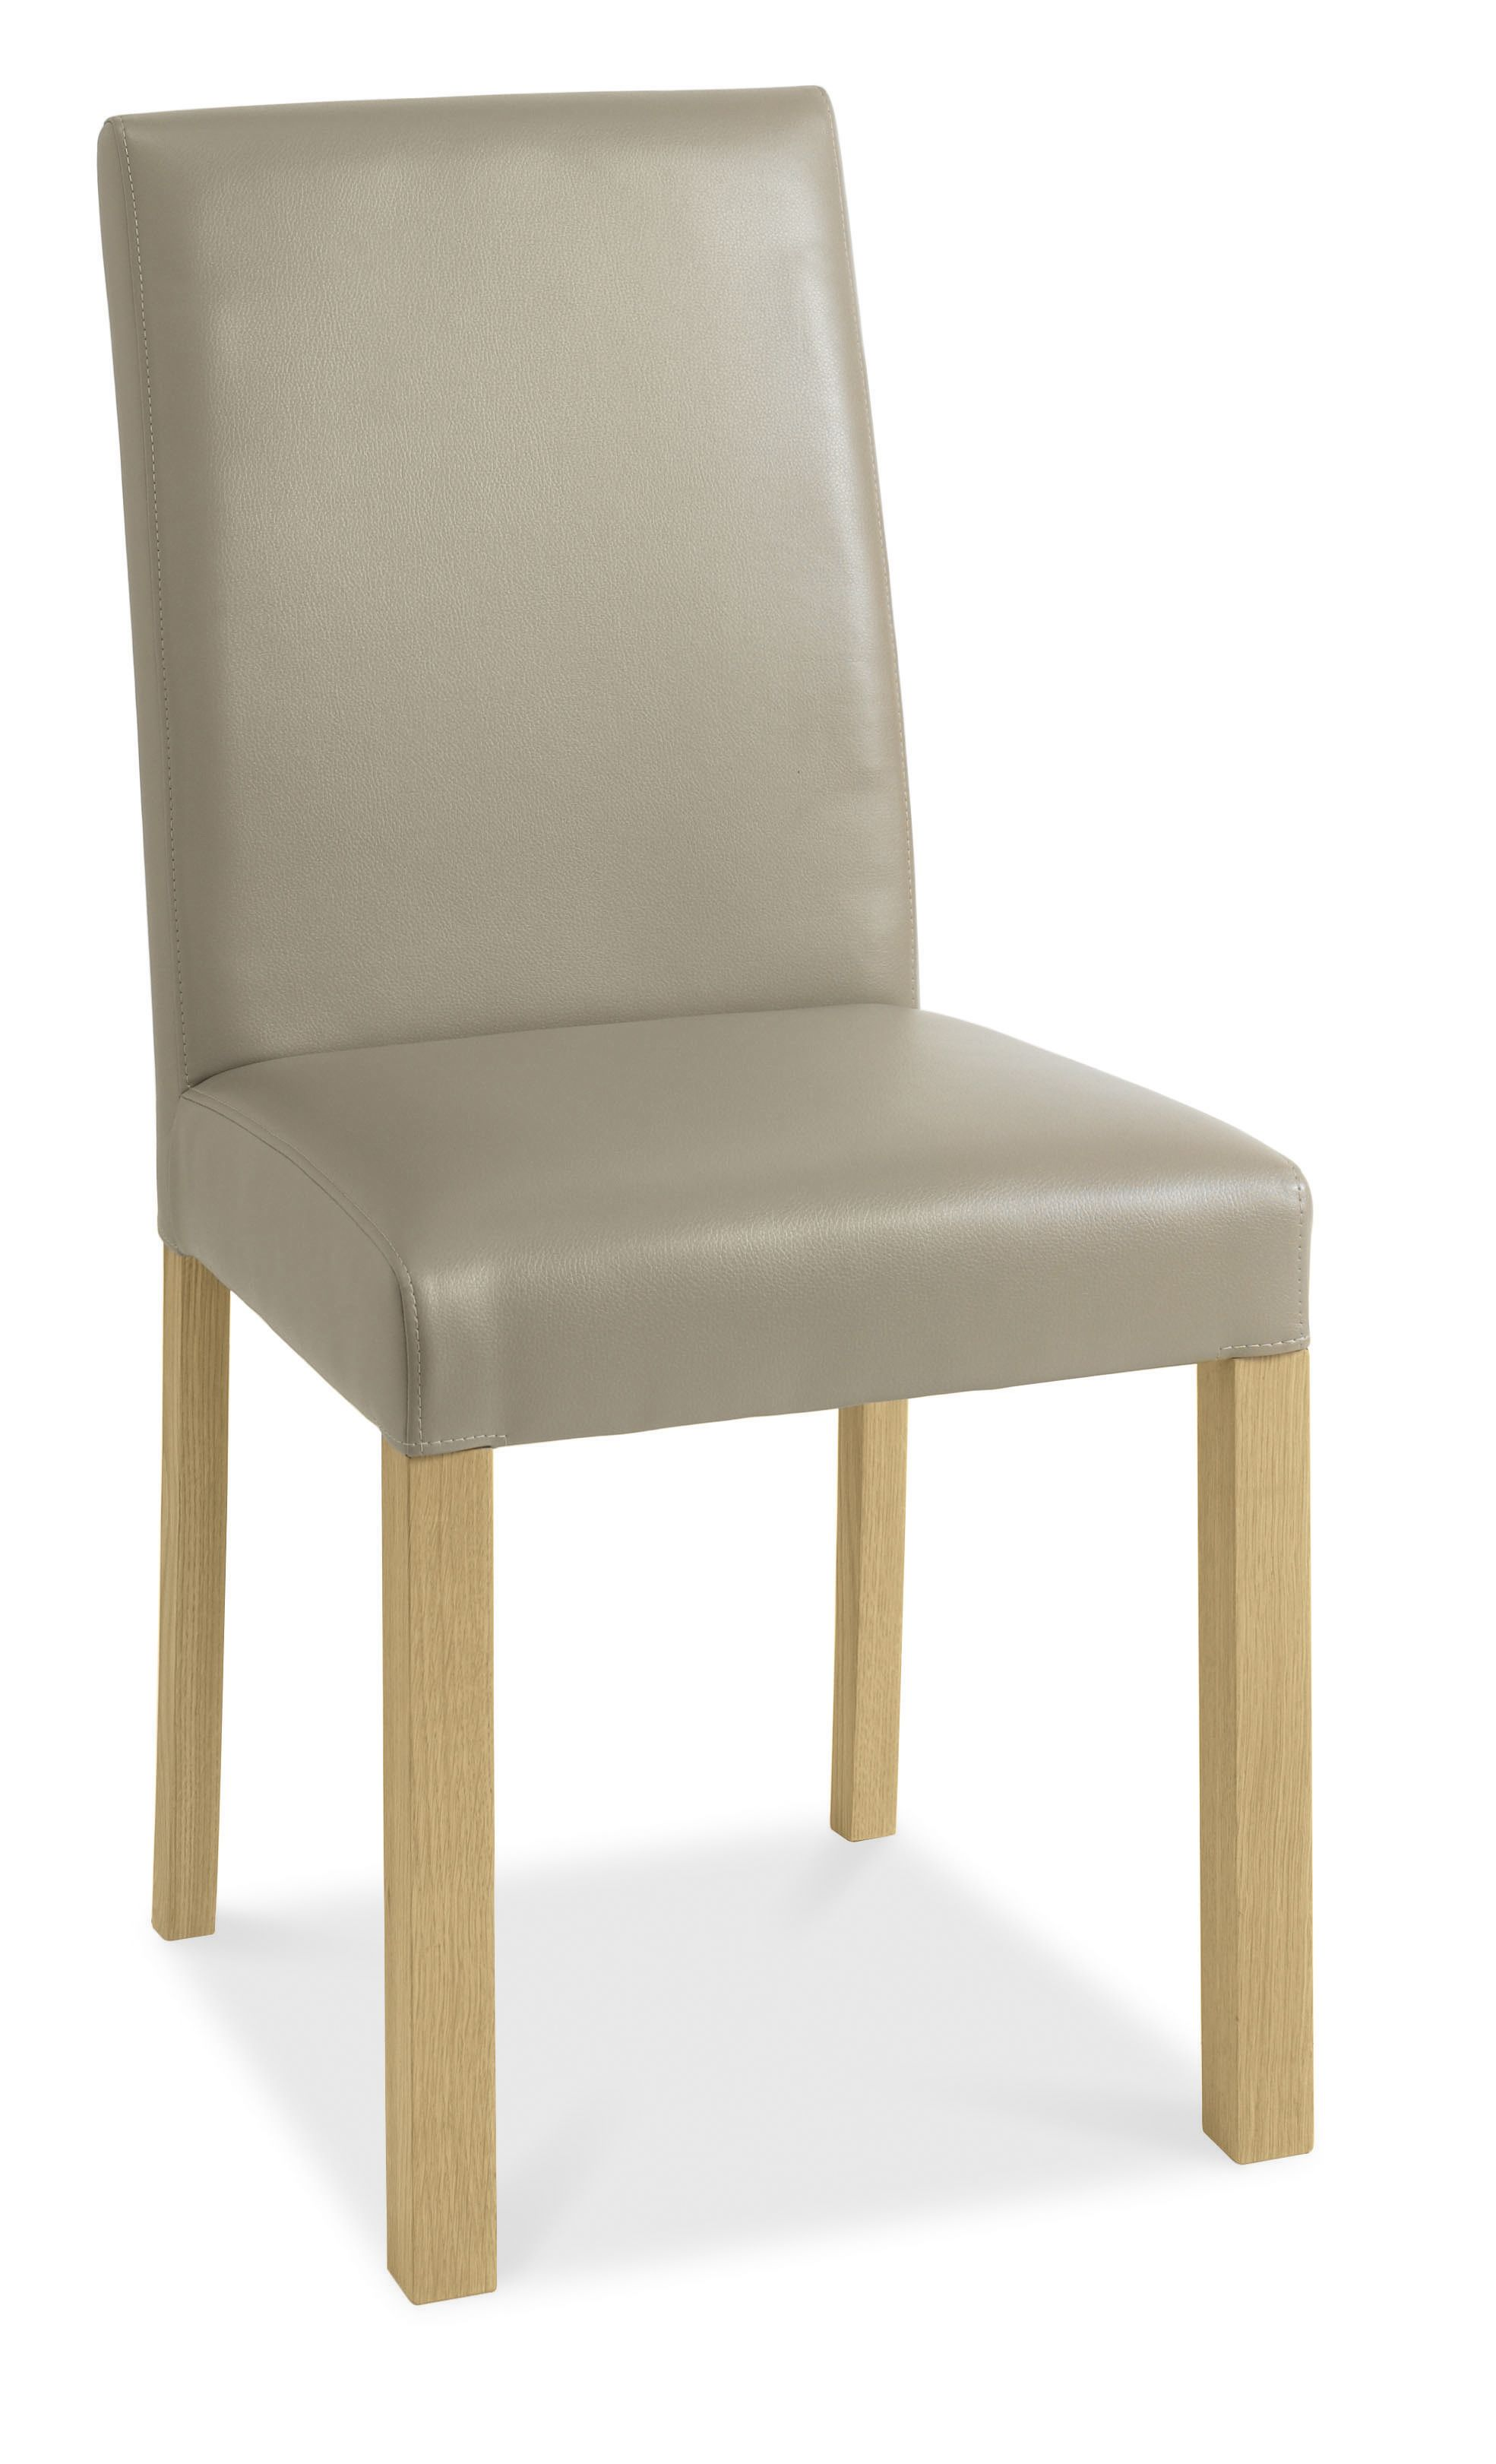 https://www.firstfurniture.co.uk/pub/media/catalog/product/8/3/8305-09B-C1.jpg